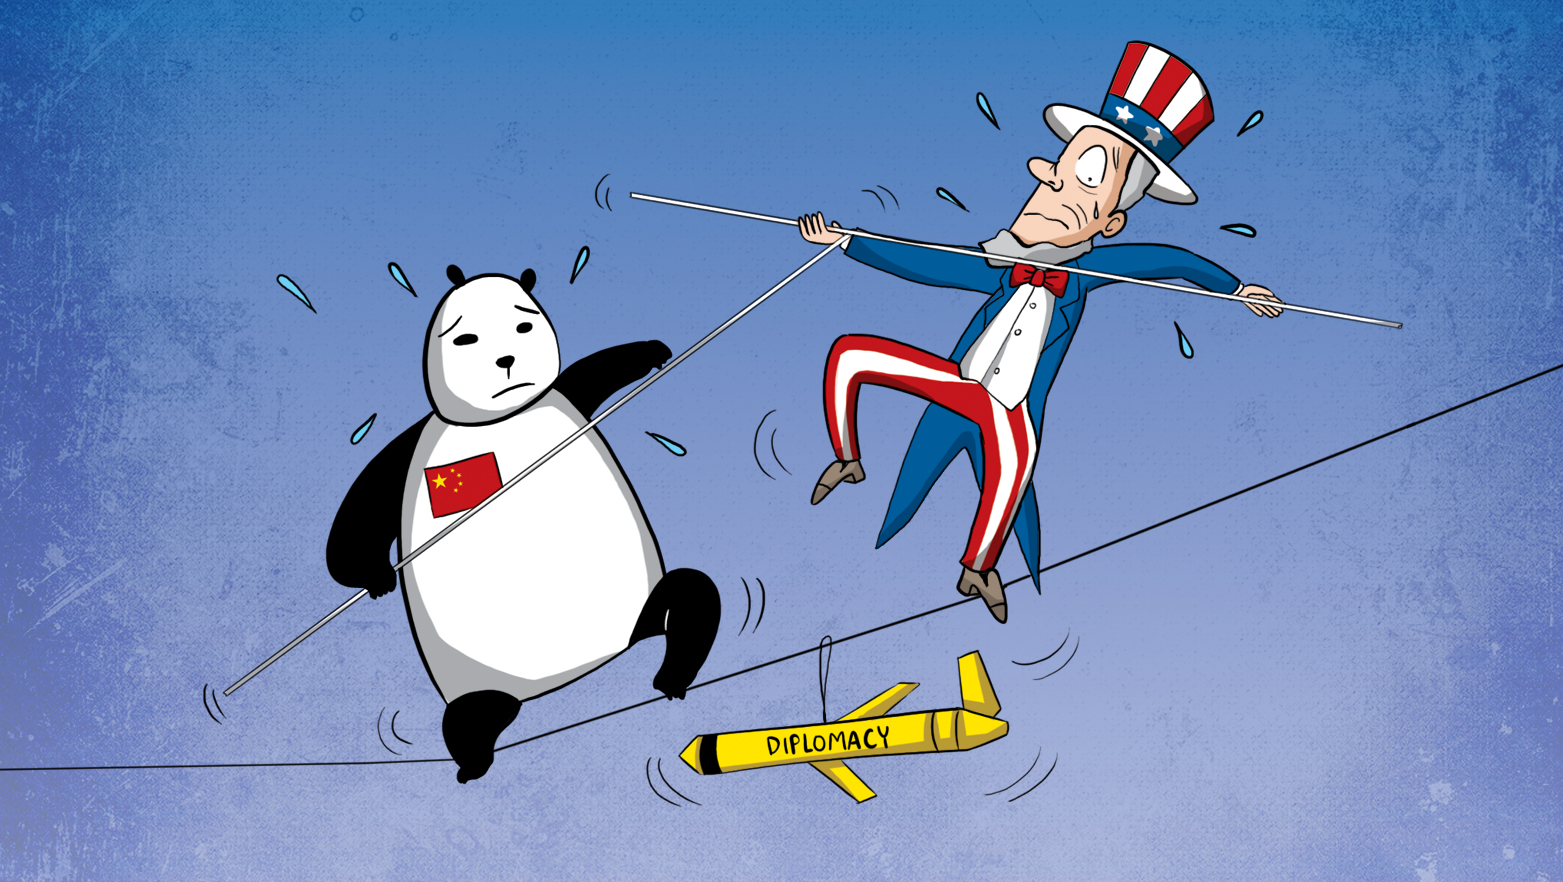 US, China diplomacy after naval drone